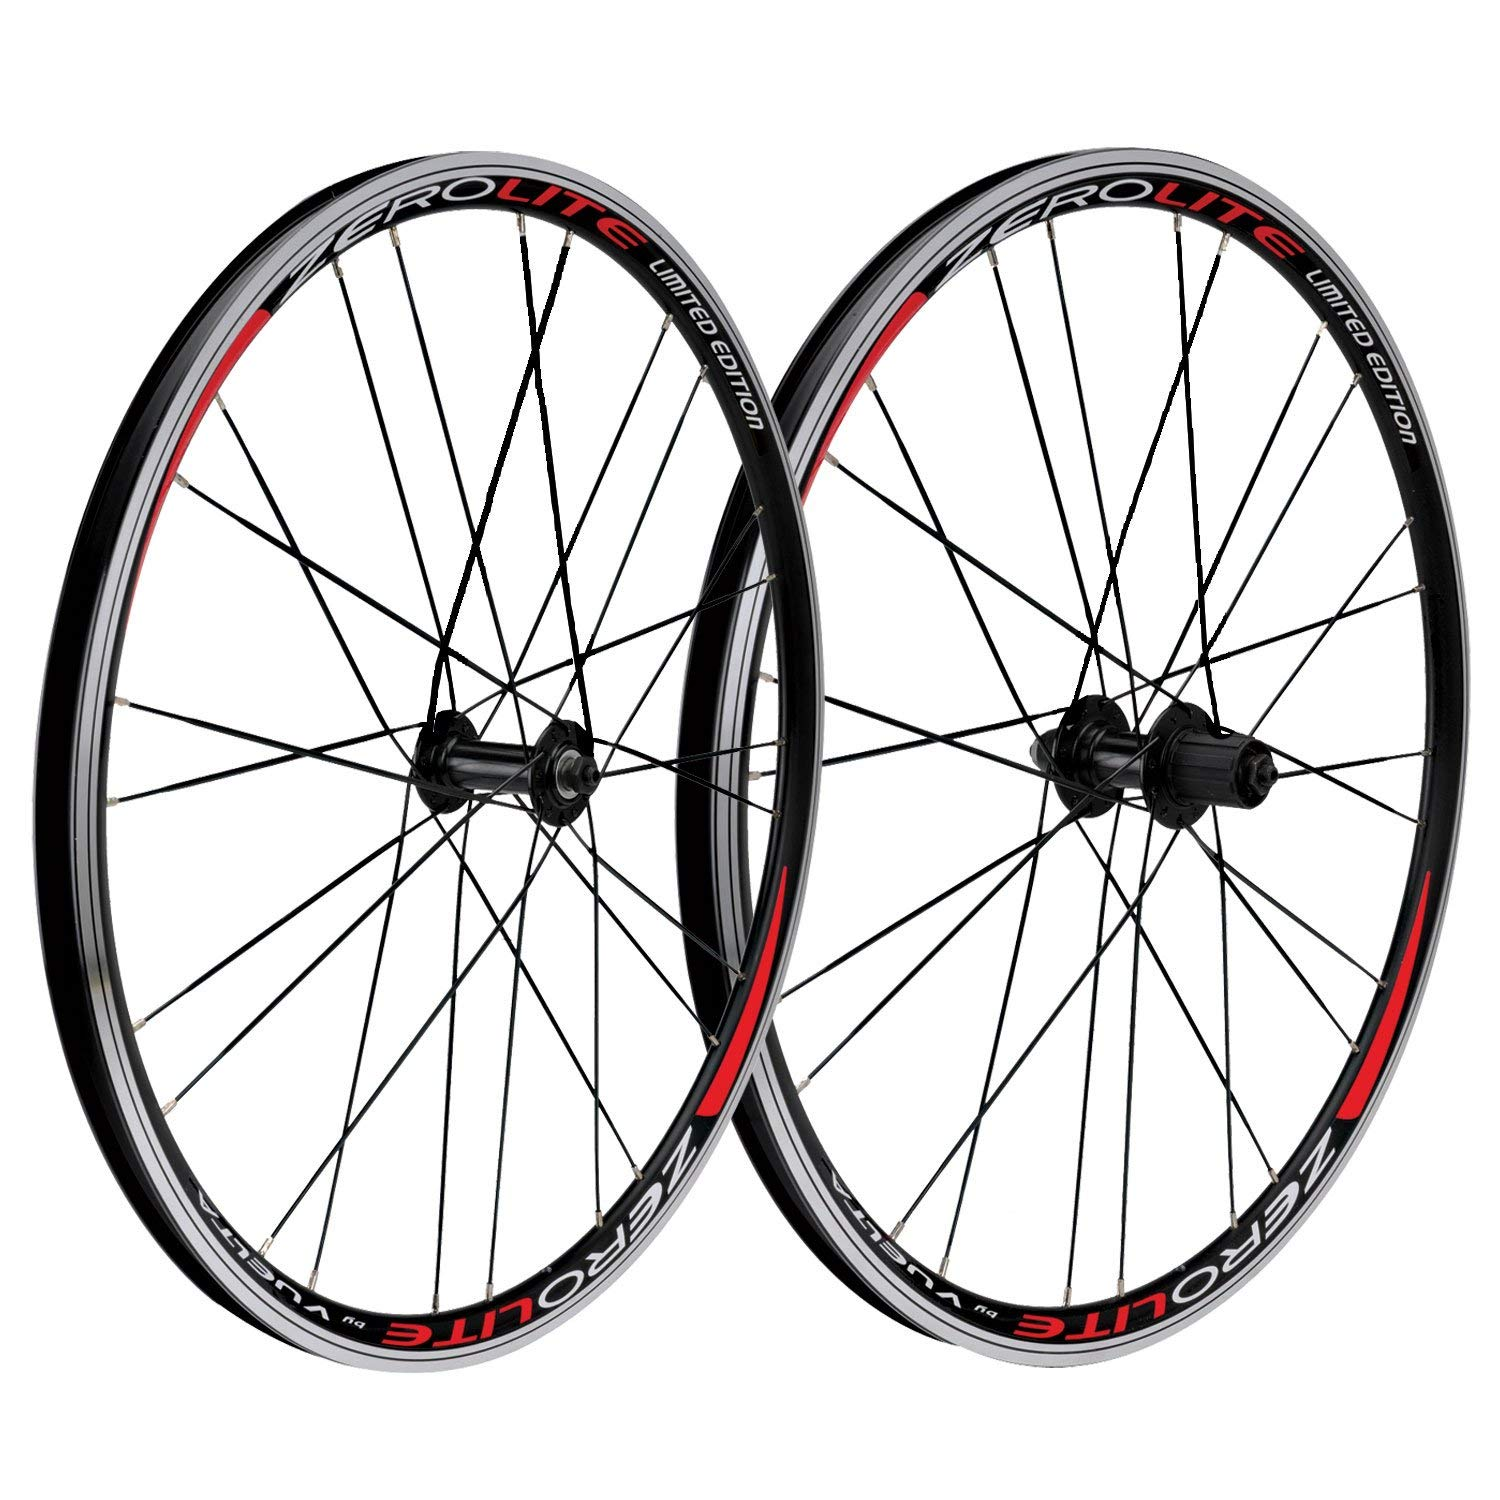 Vuelta Zerolite 26-Inch Bicycle Wheel